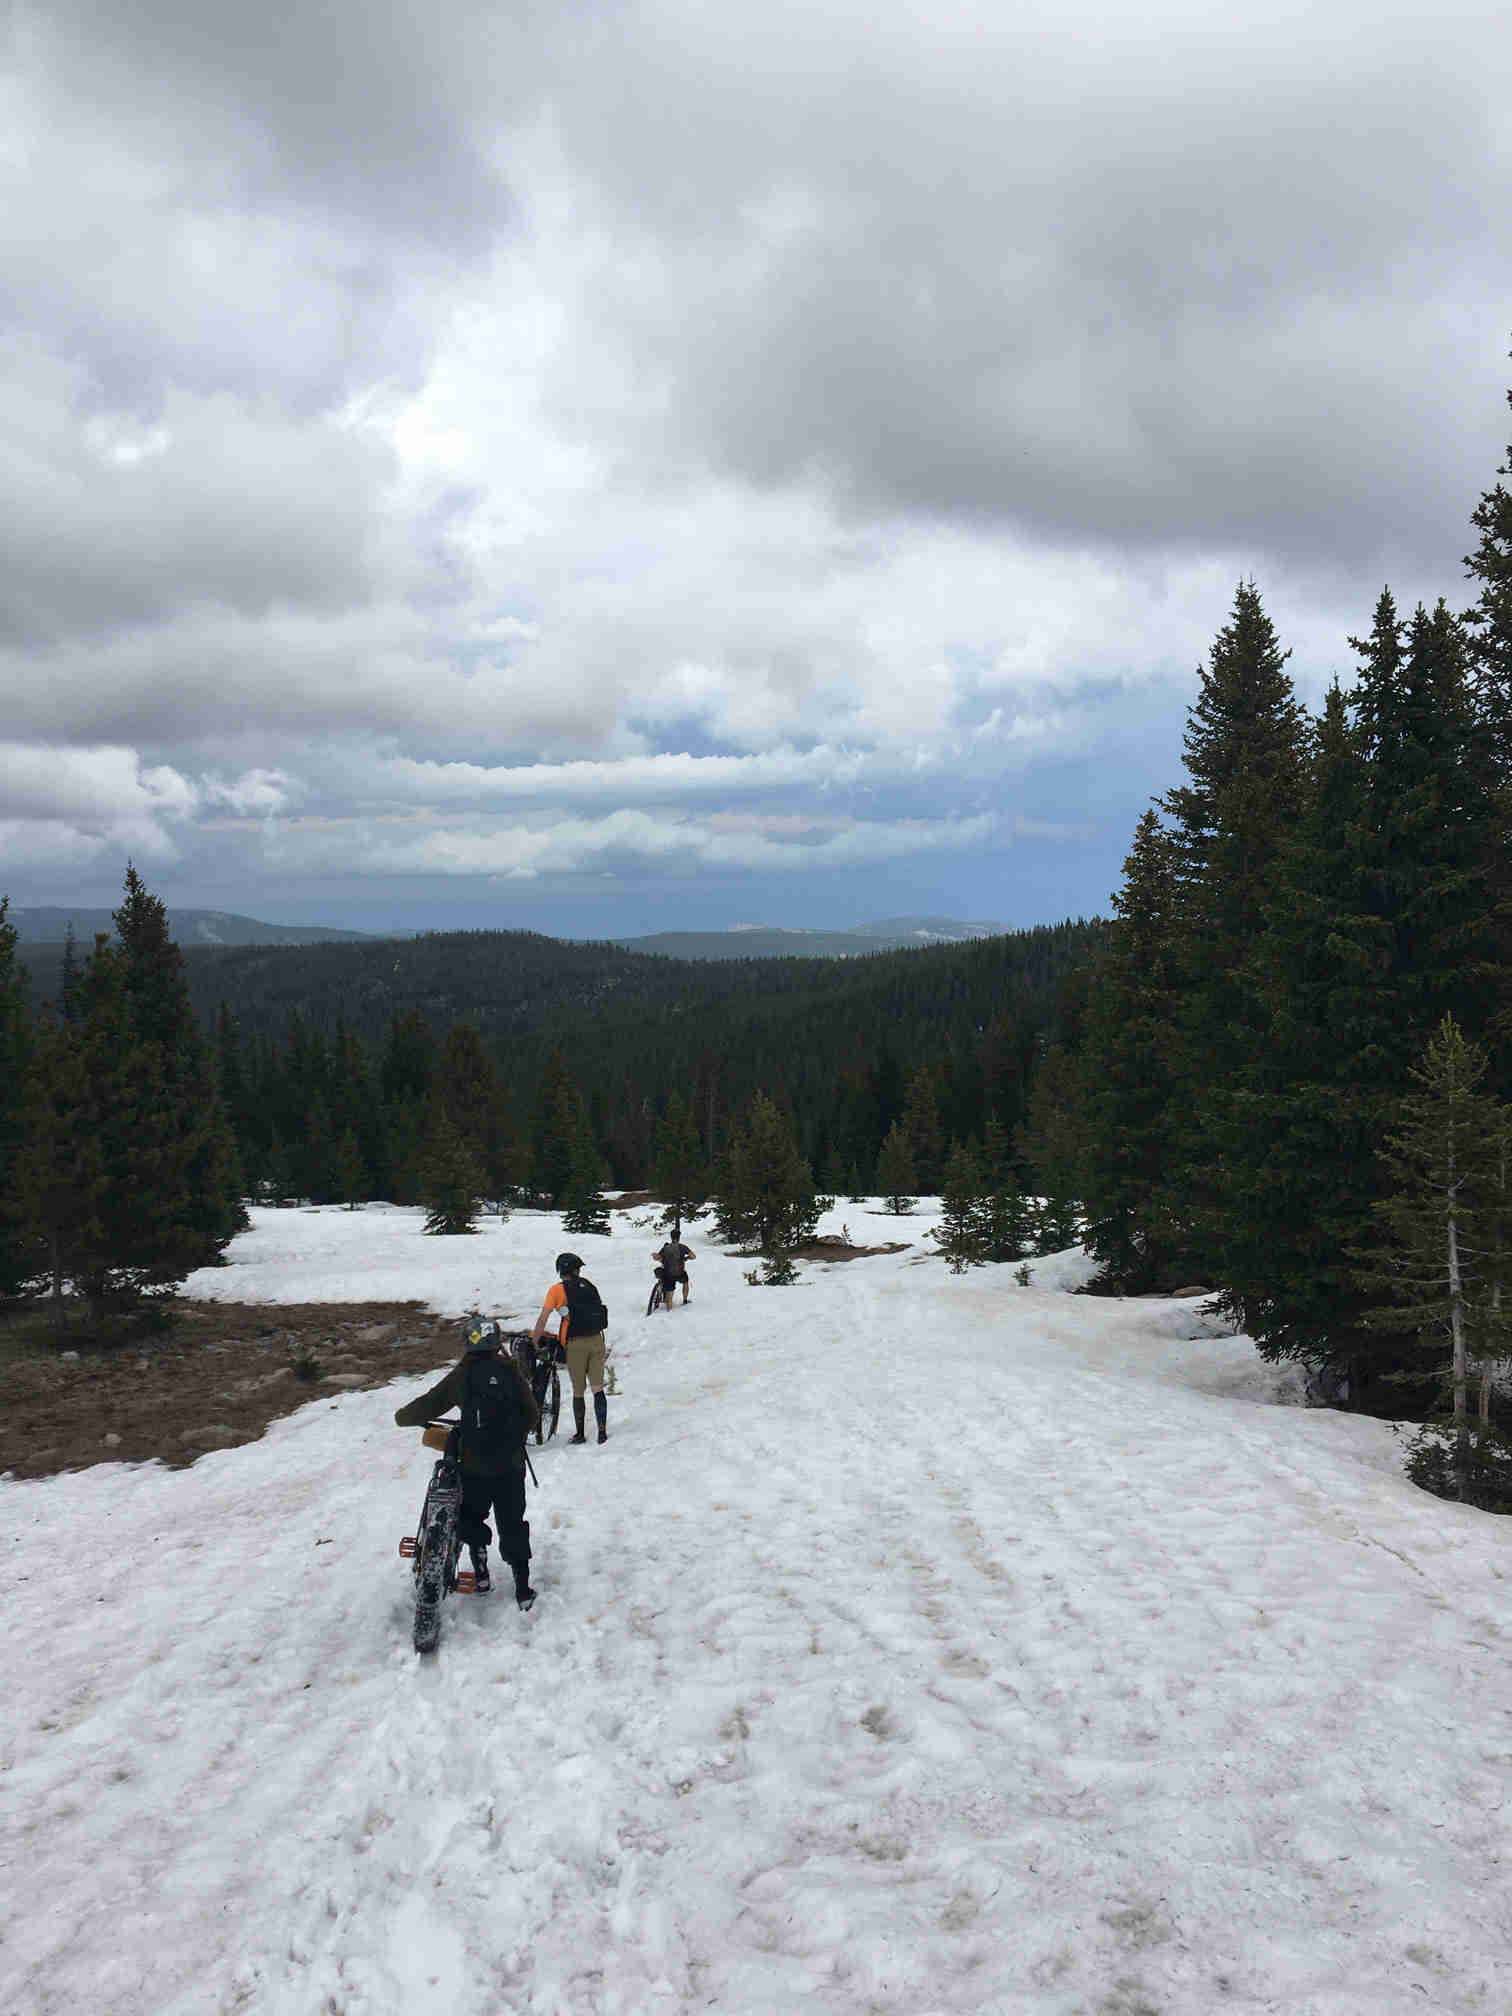 Rear view of 3 cyclists walking their bikes down a snowy hill, with pine trees and mountains ahead